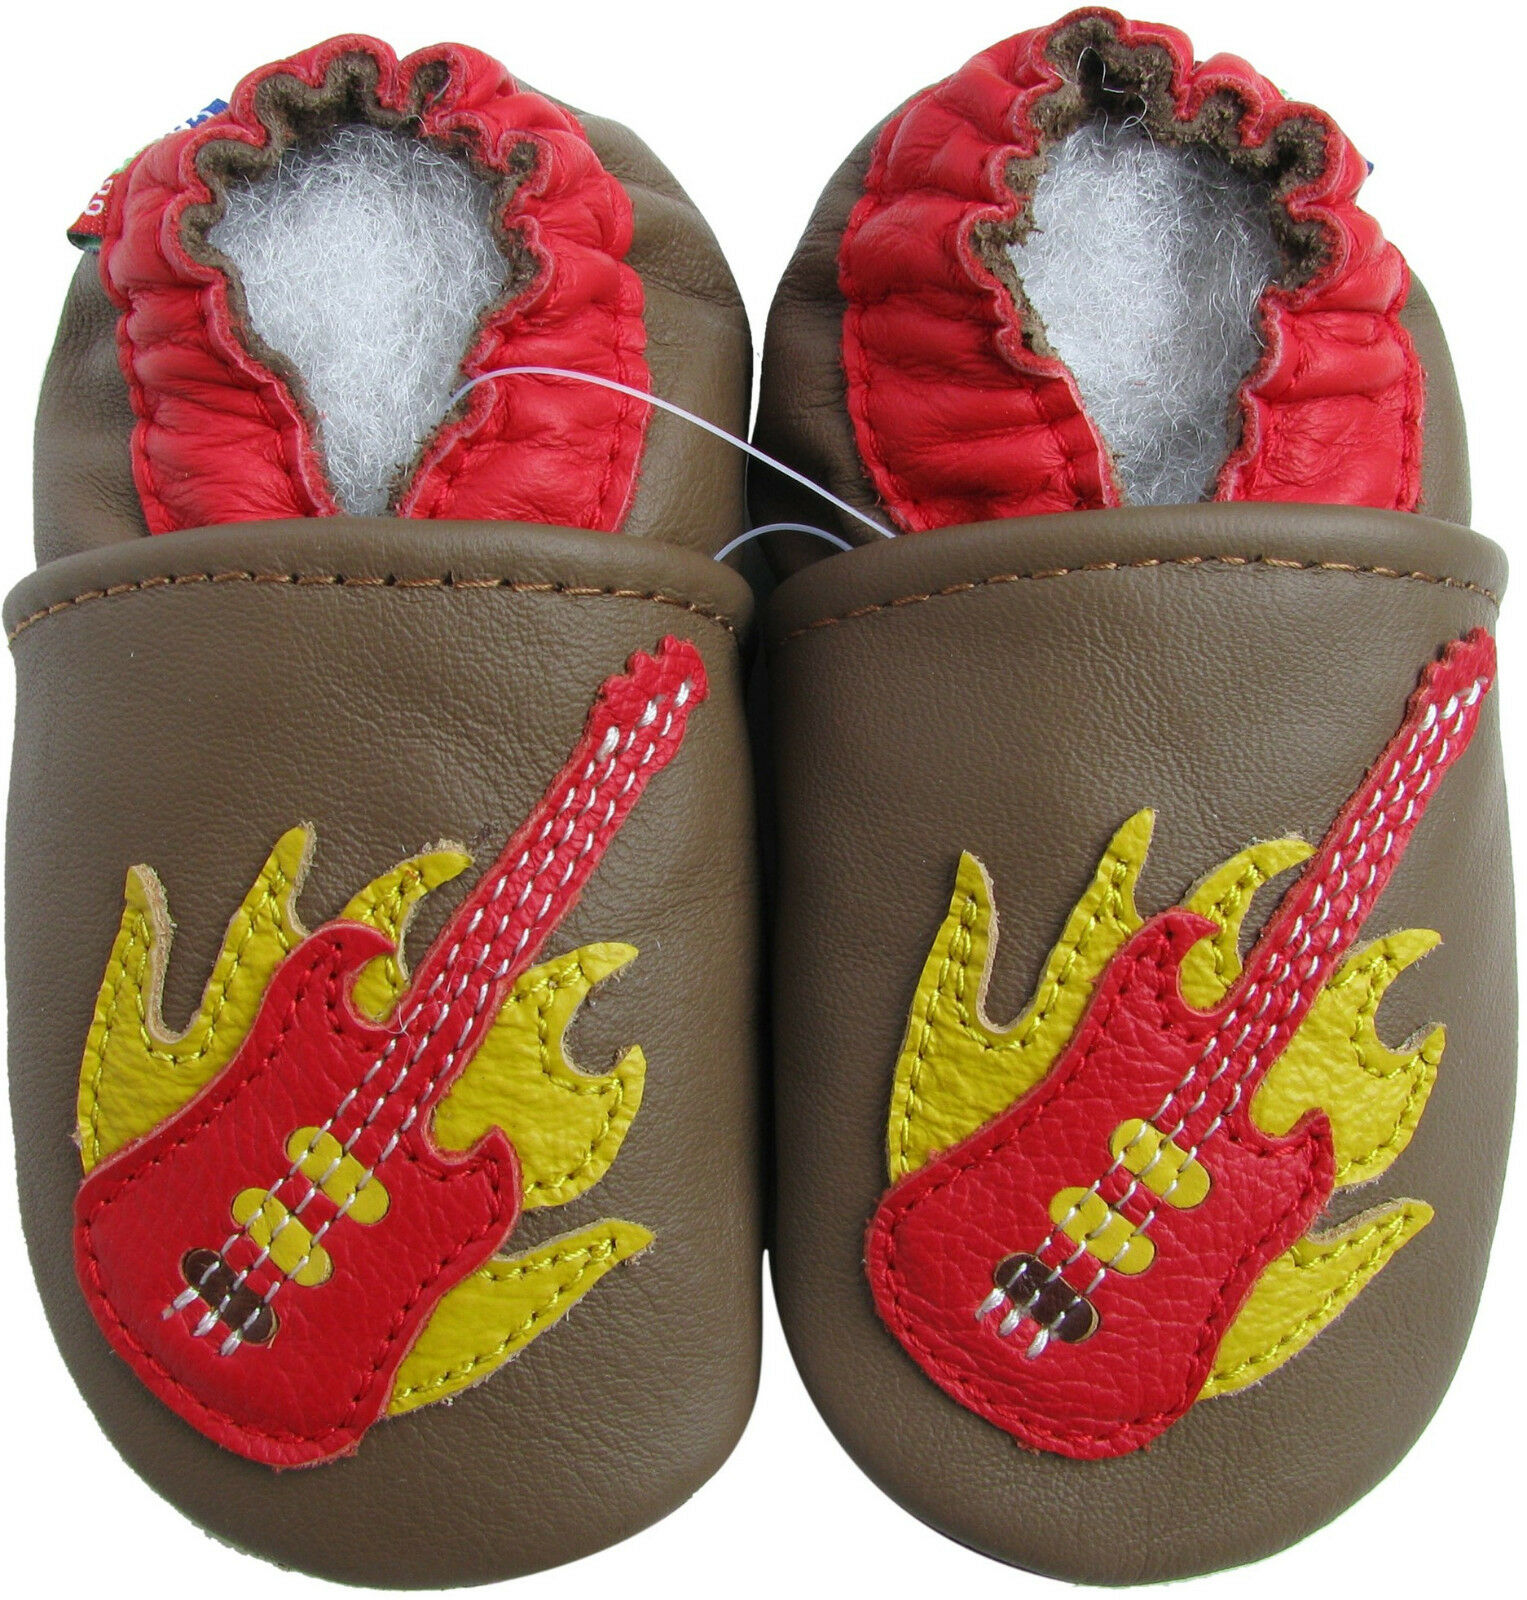 Carozoo Guitar Brown 6 12m Soft Sole Leather Baby Shoes